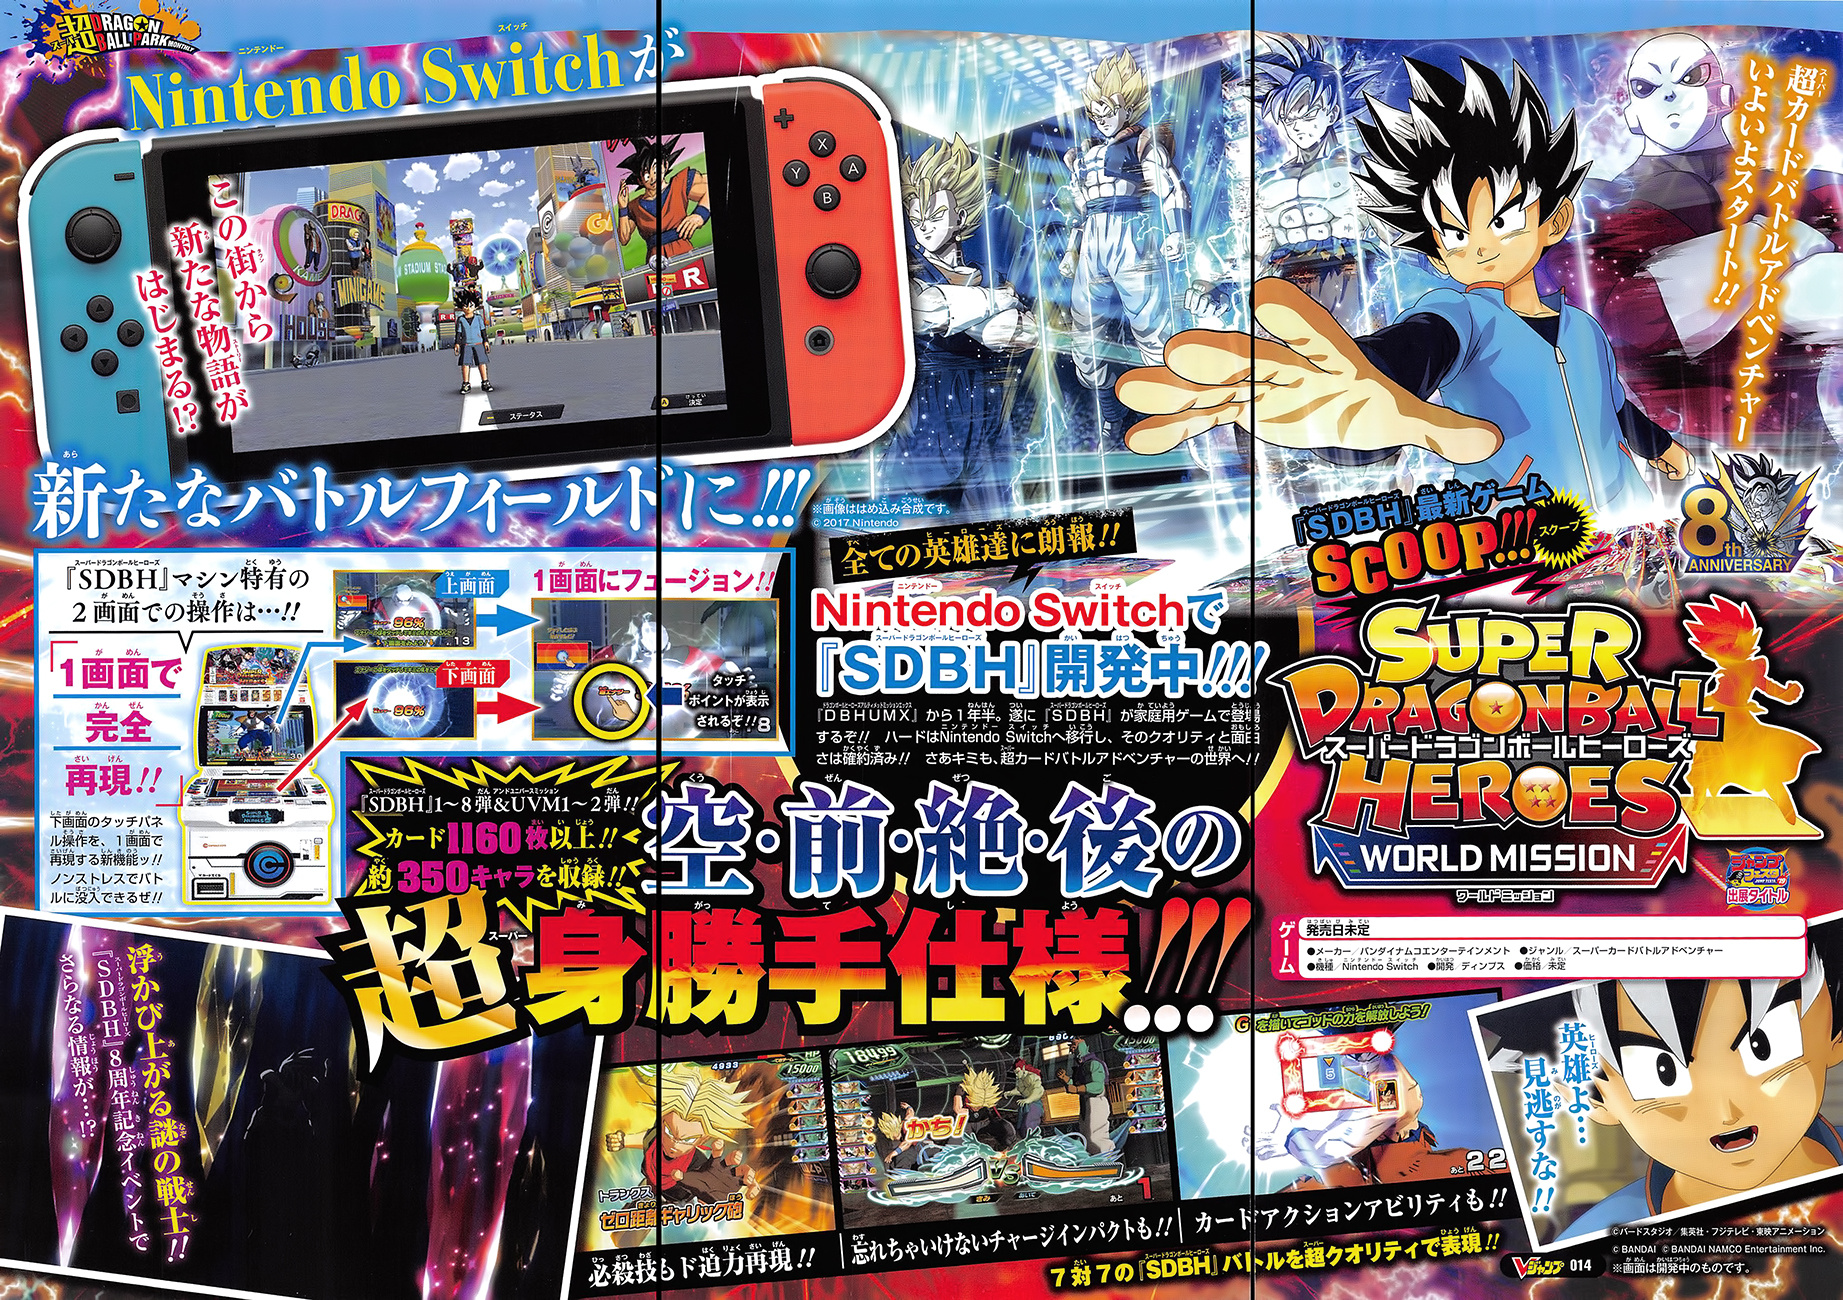 Página escaneada da revista V-Jump tratando sobre Super Dragon Ball Heroes: World Mission